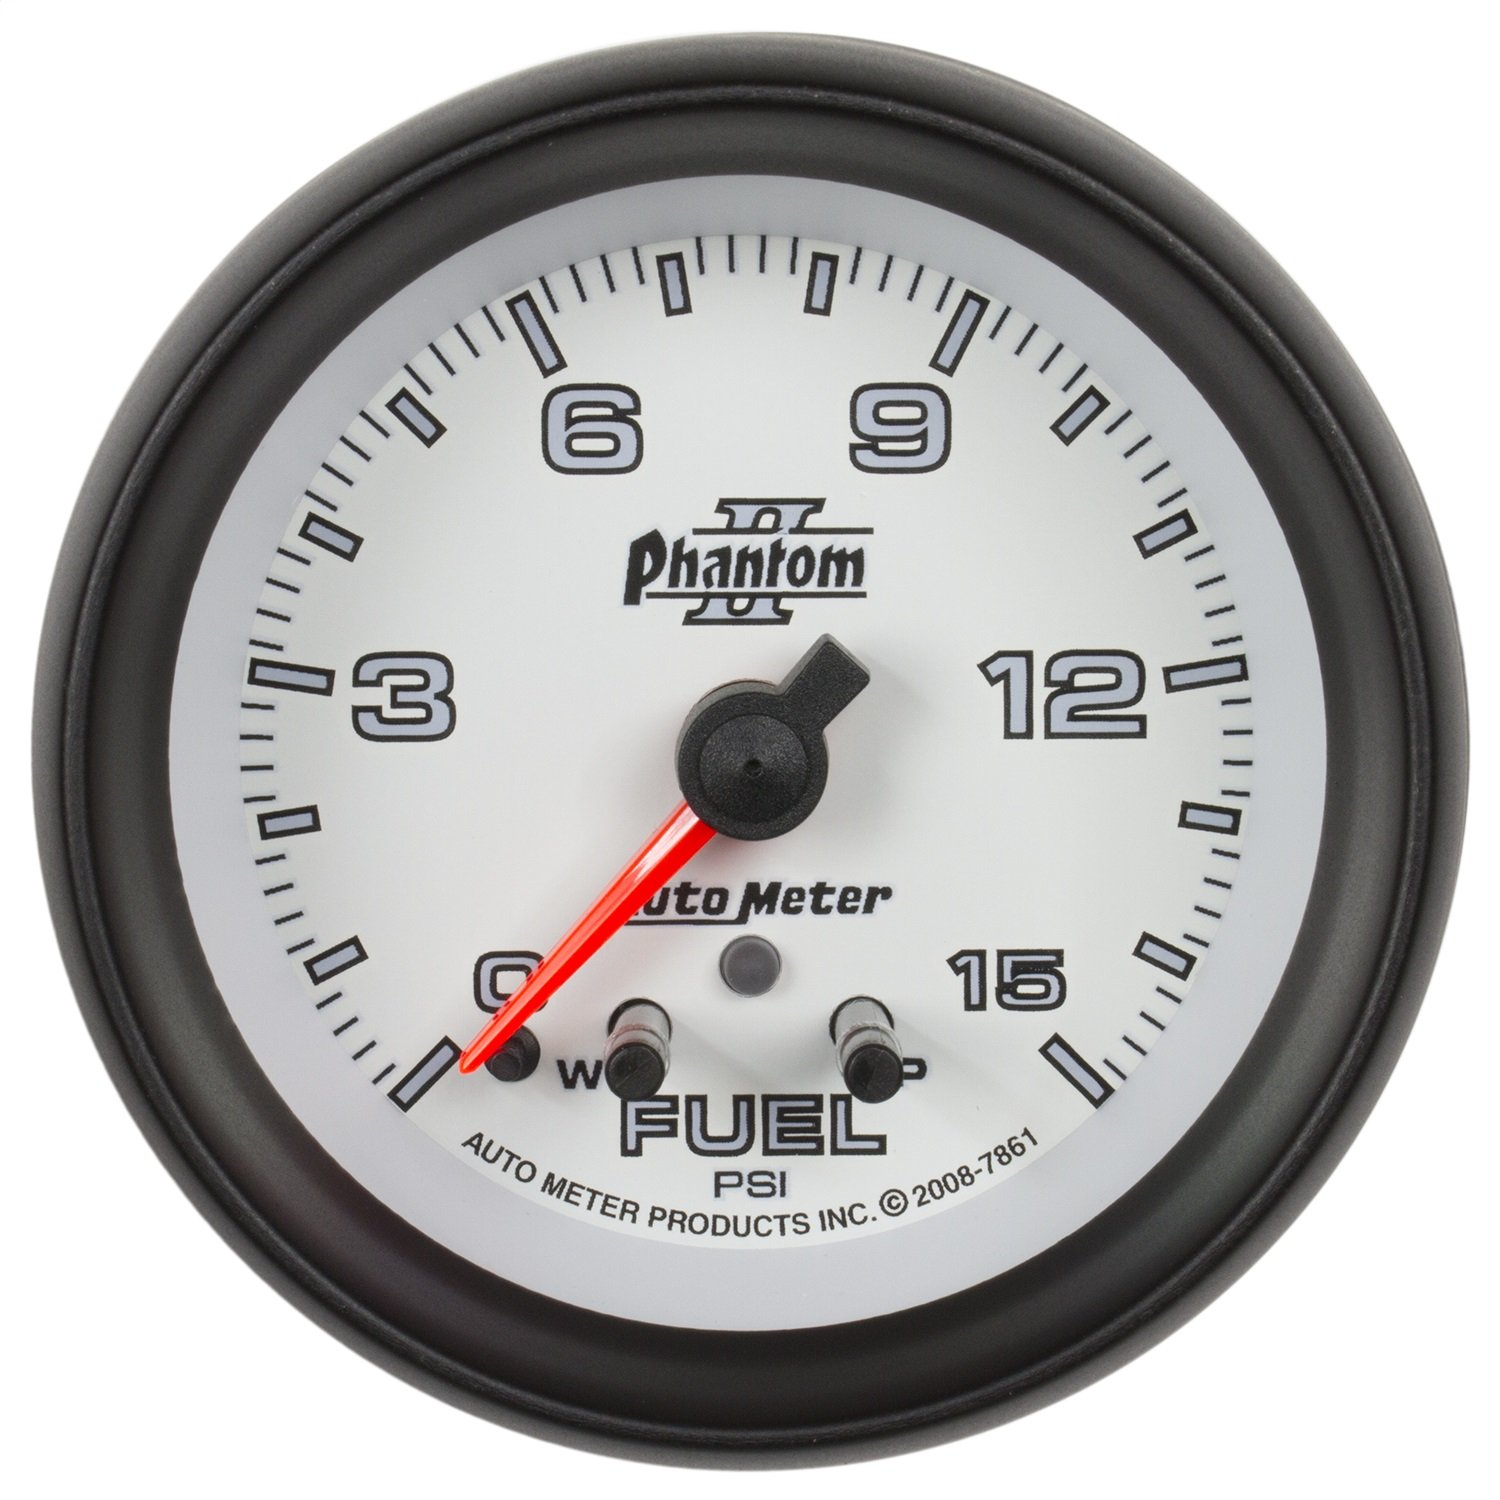 Auto Meter 7861 Phantom II 2-5//8 0-15 PSI Full Sweep Electric Fuel Pressure Gauge with Peak Memory and Warning